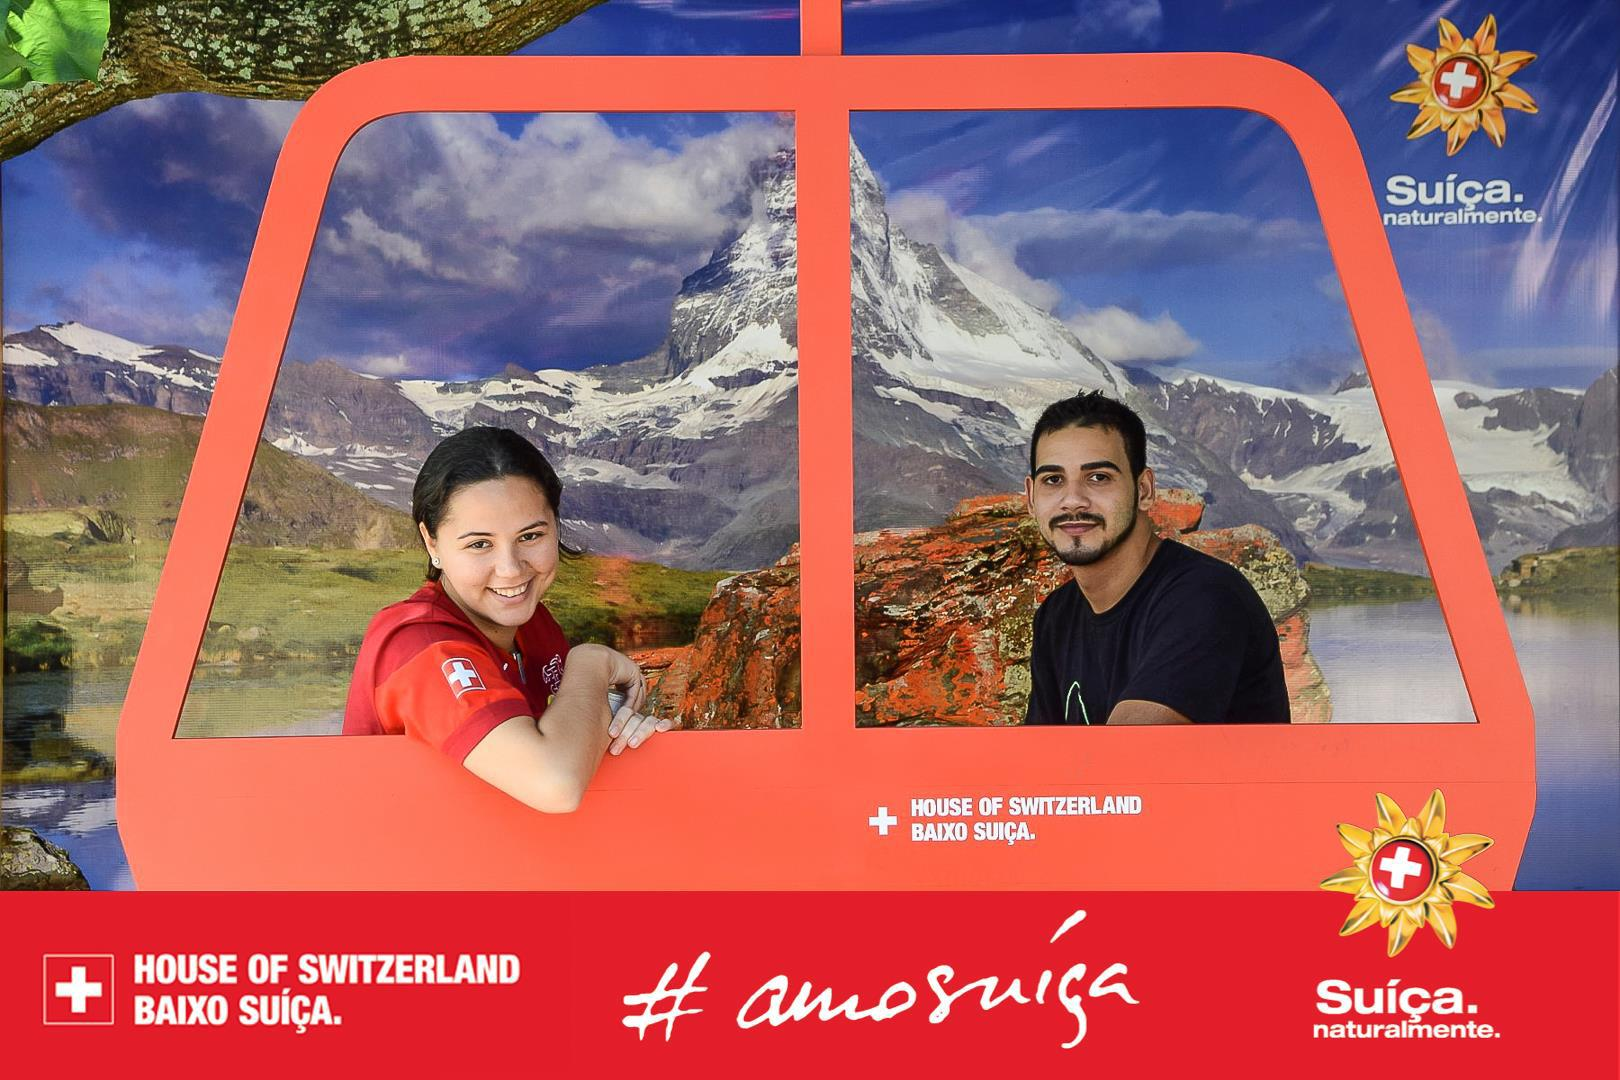 Photopoint at House of Switzerland, Rio 2014